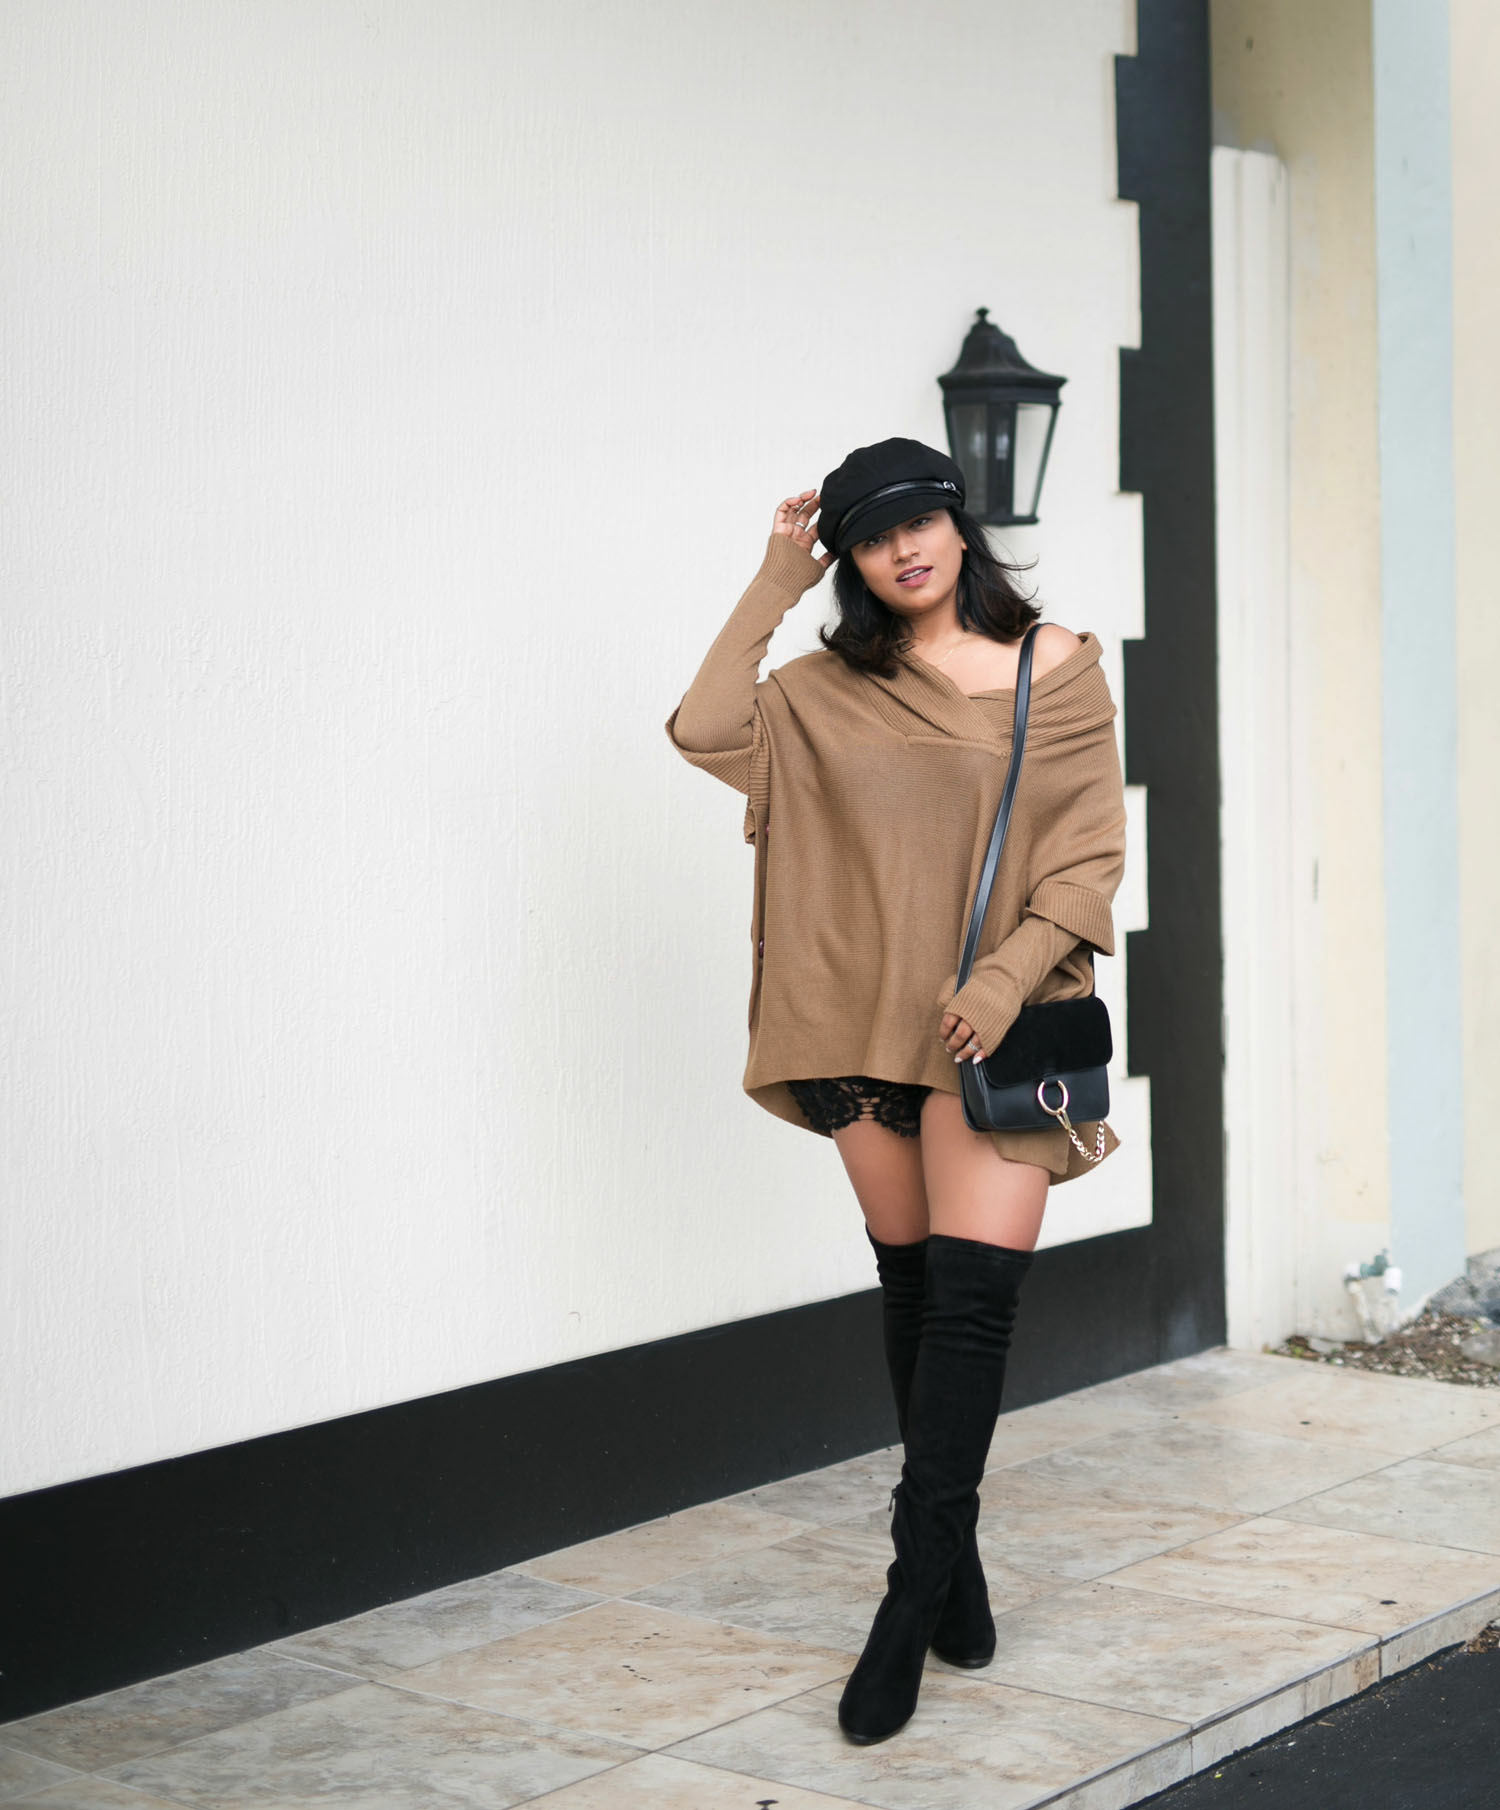 Miami Fashion Street Style Fall Fashion